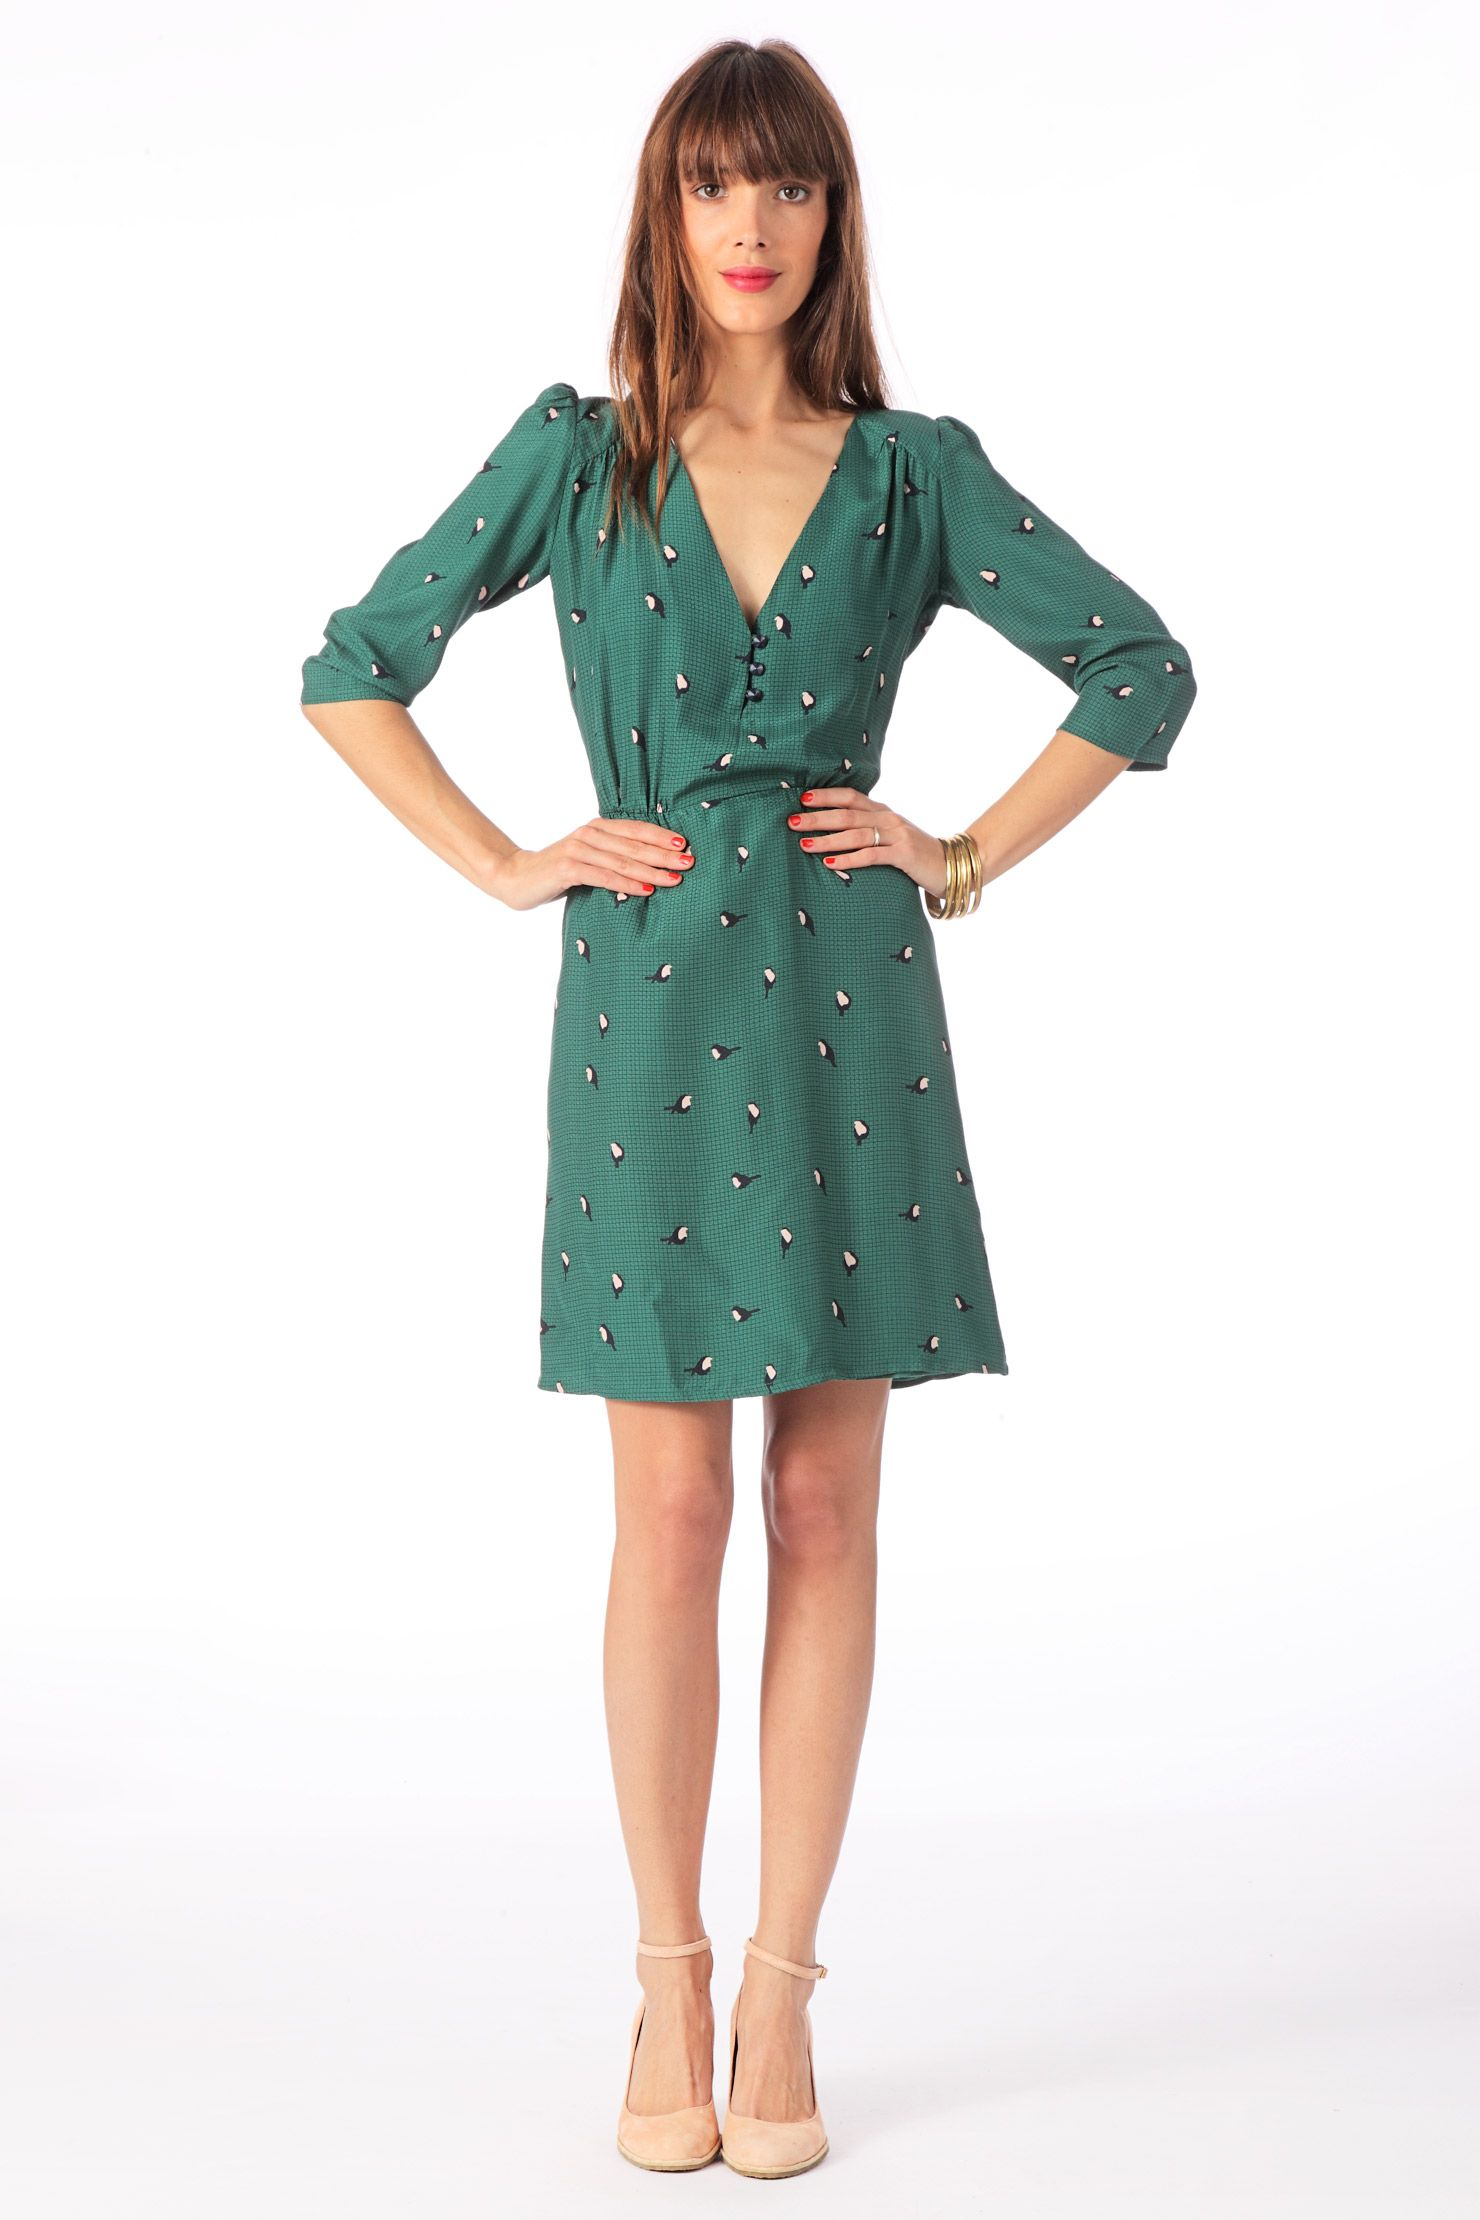 ada3d41a9c82 Robe en soie Beauvoir Vert Sessun sur MonShowroom.com